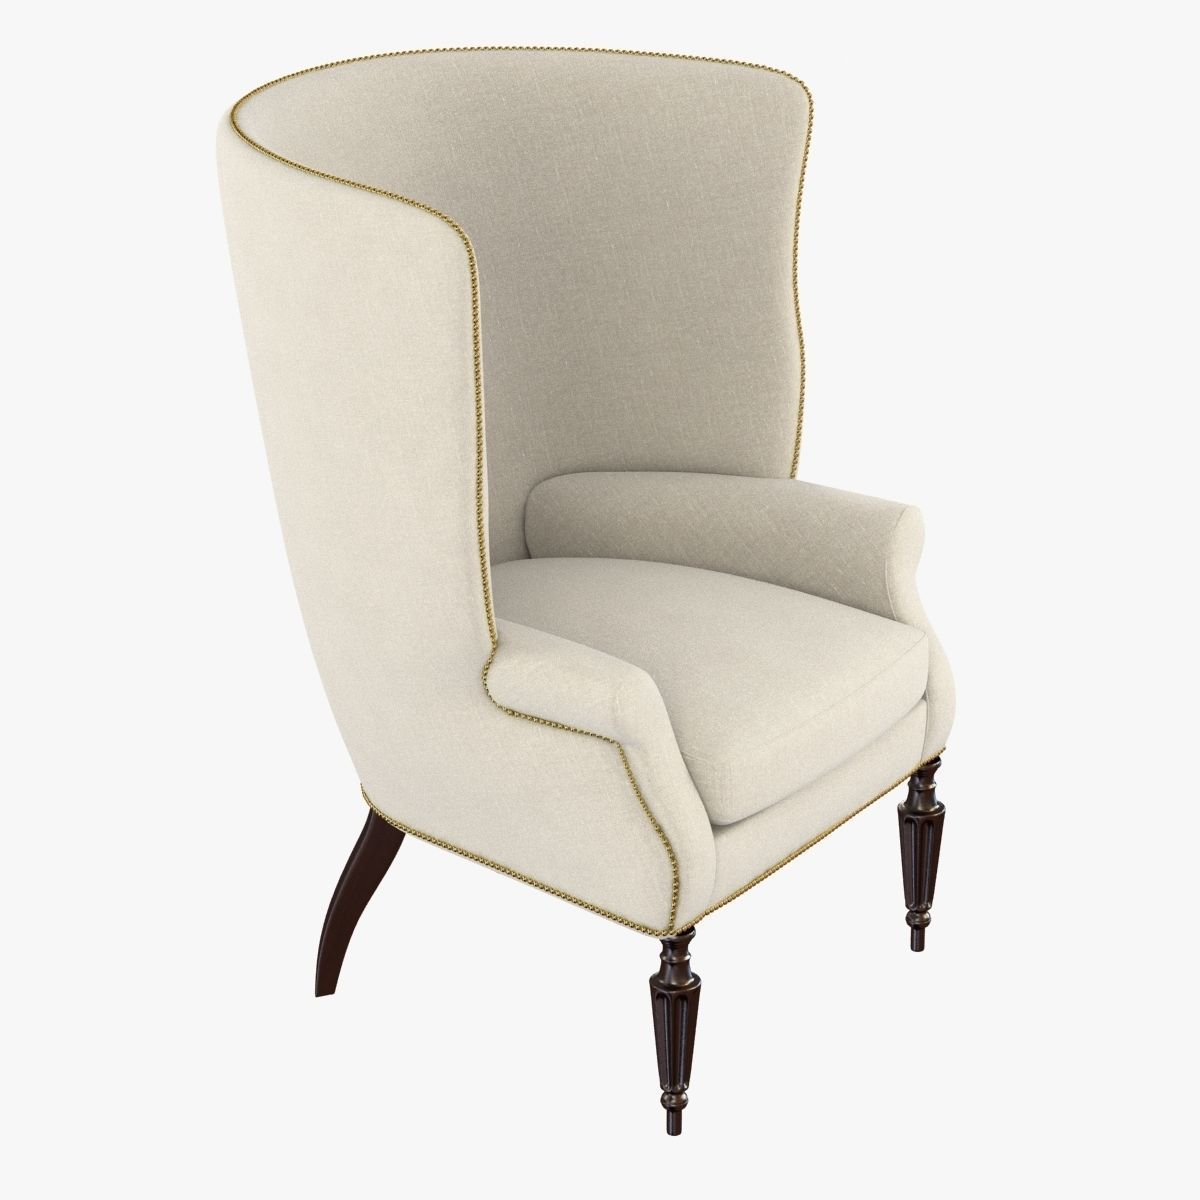 the wainscott wing chair by victoria hagan